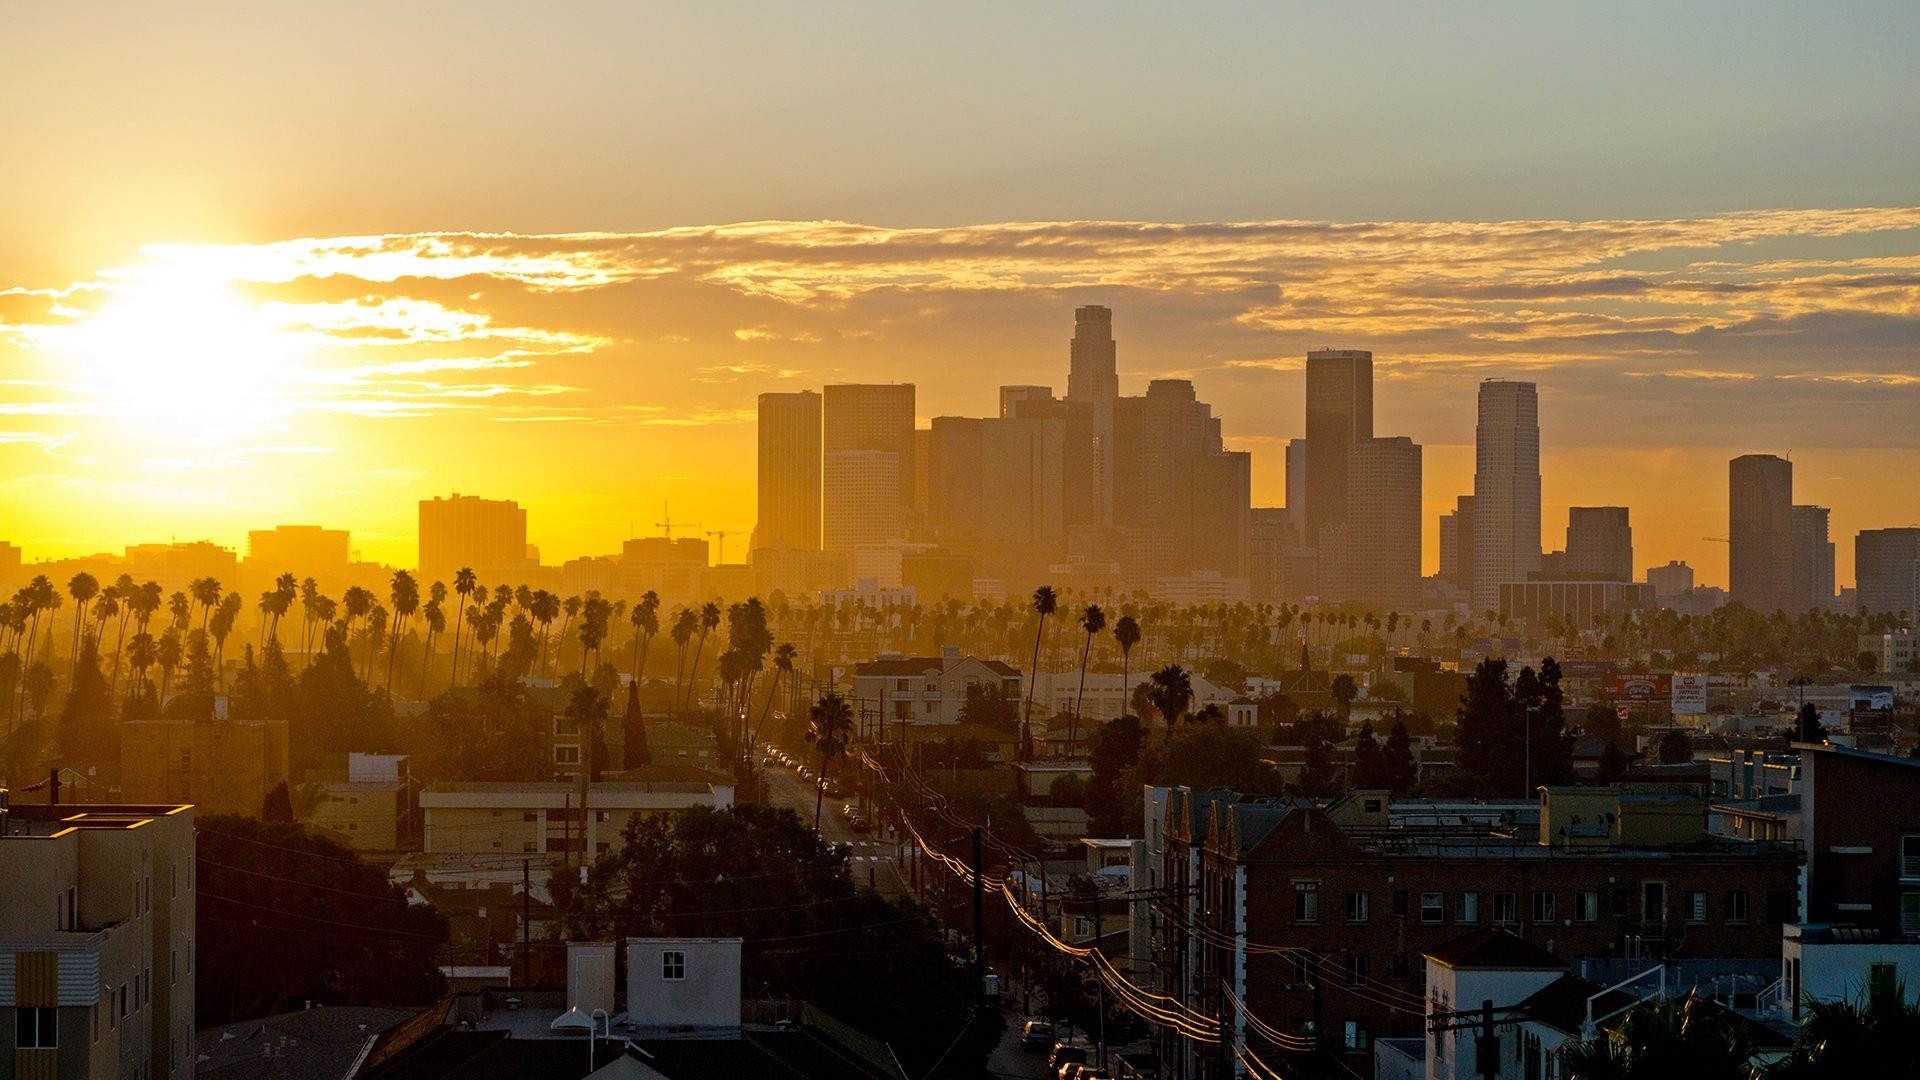 Stock photography los angeles Entertainment News - Los Angeles Times